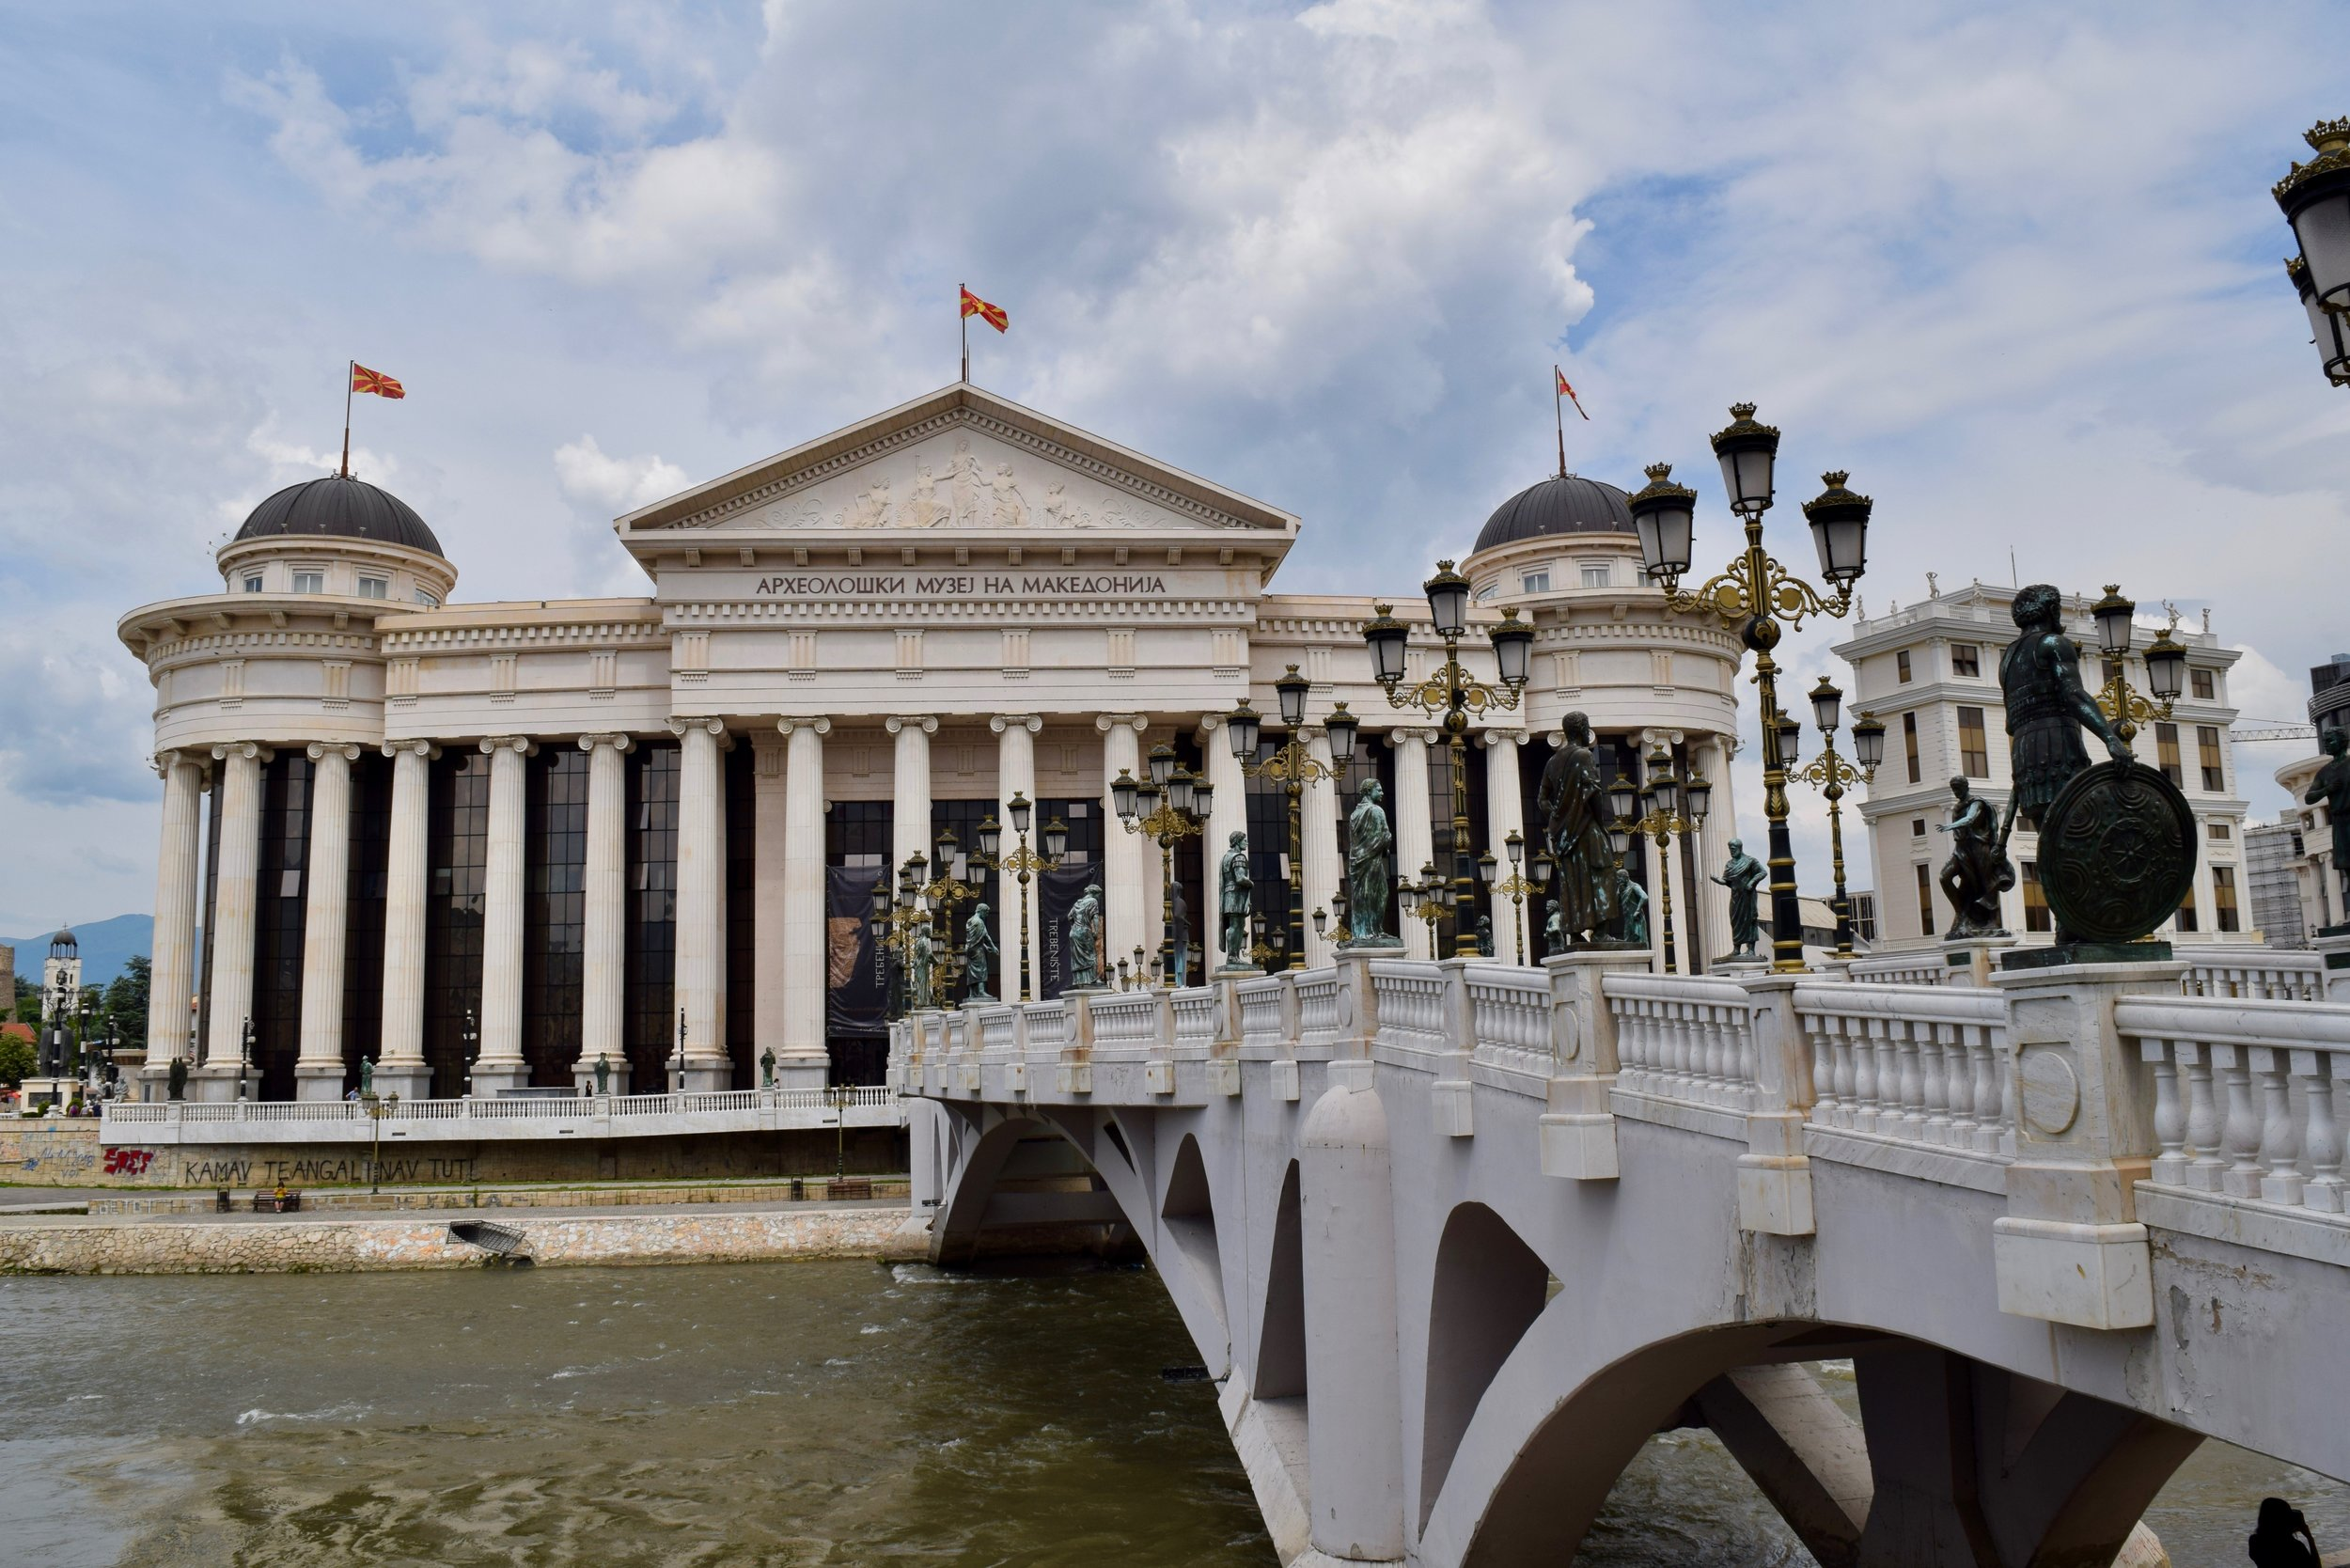 Bridge of Civilisations and Archaeological Museum of Macedonia